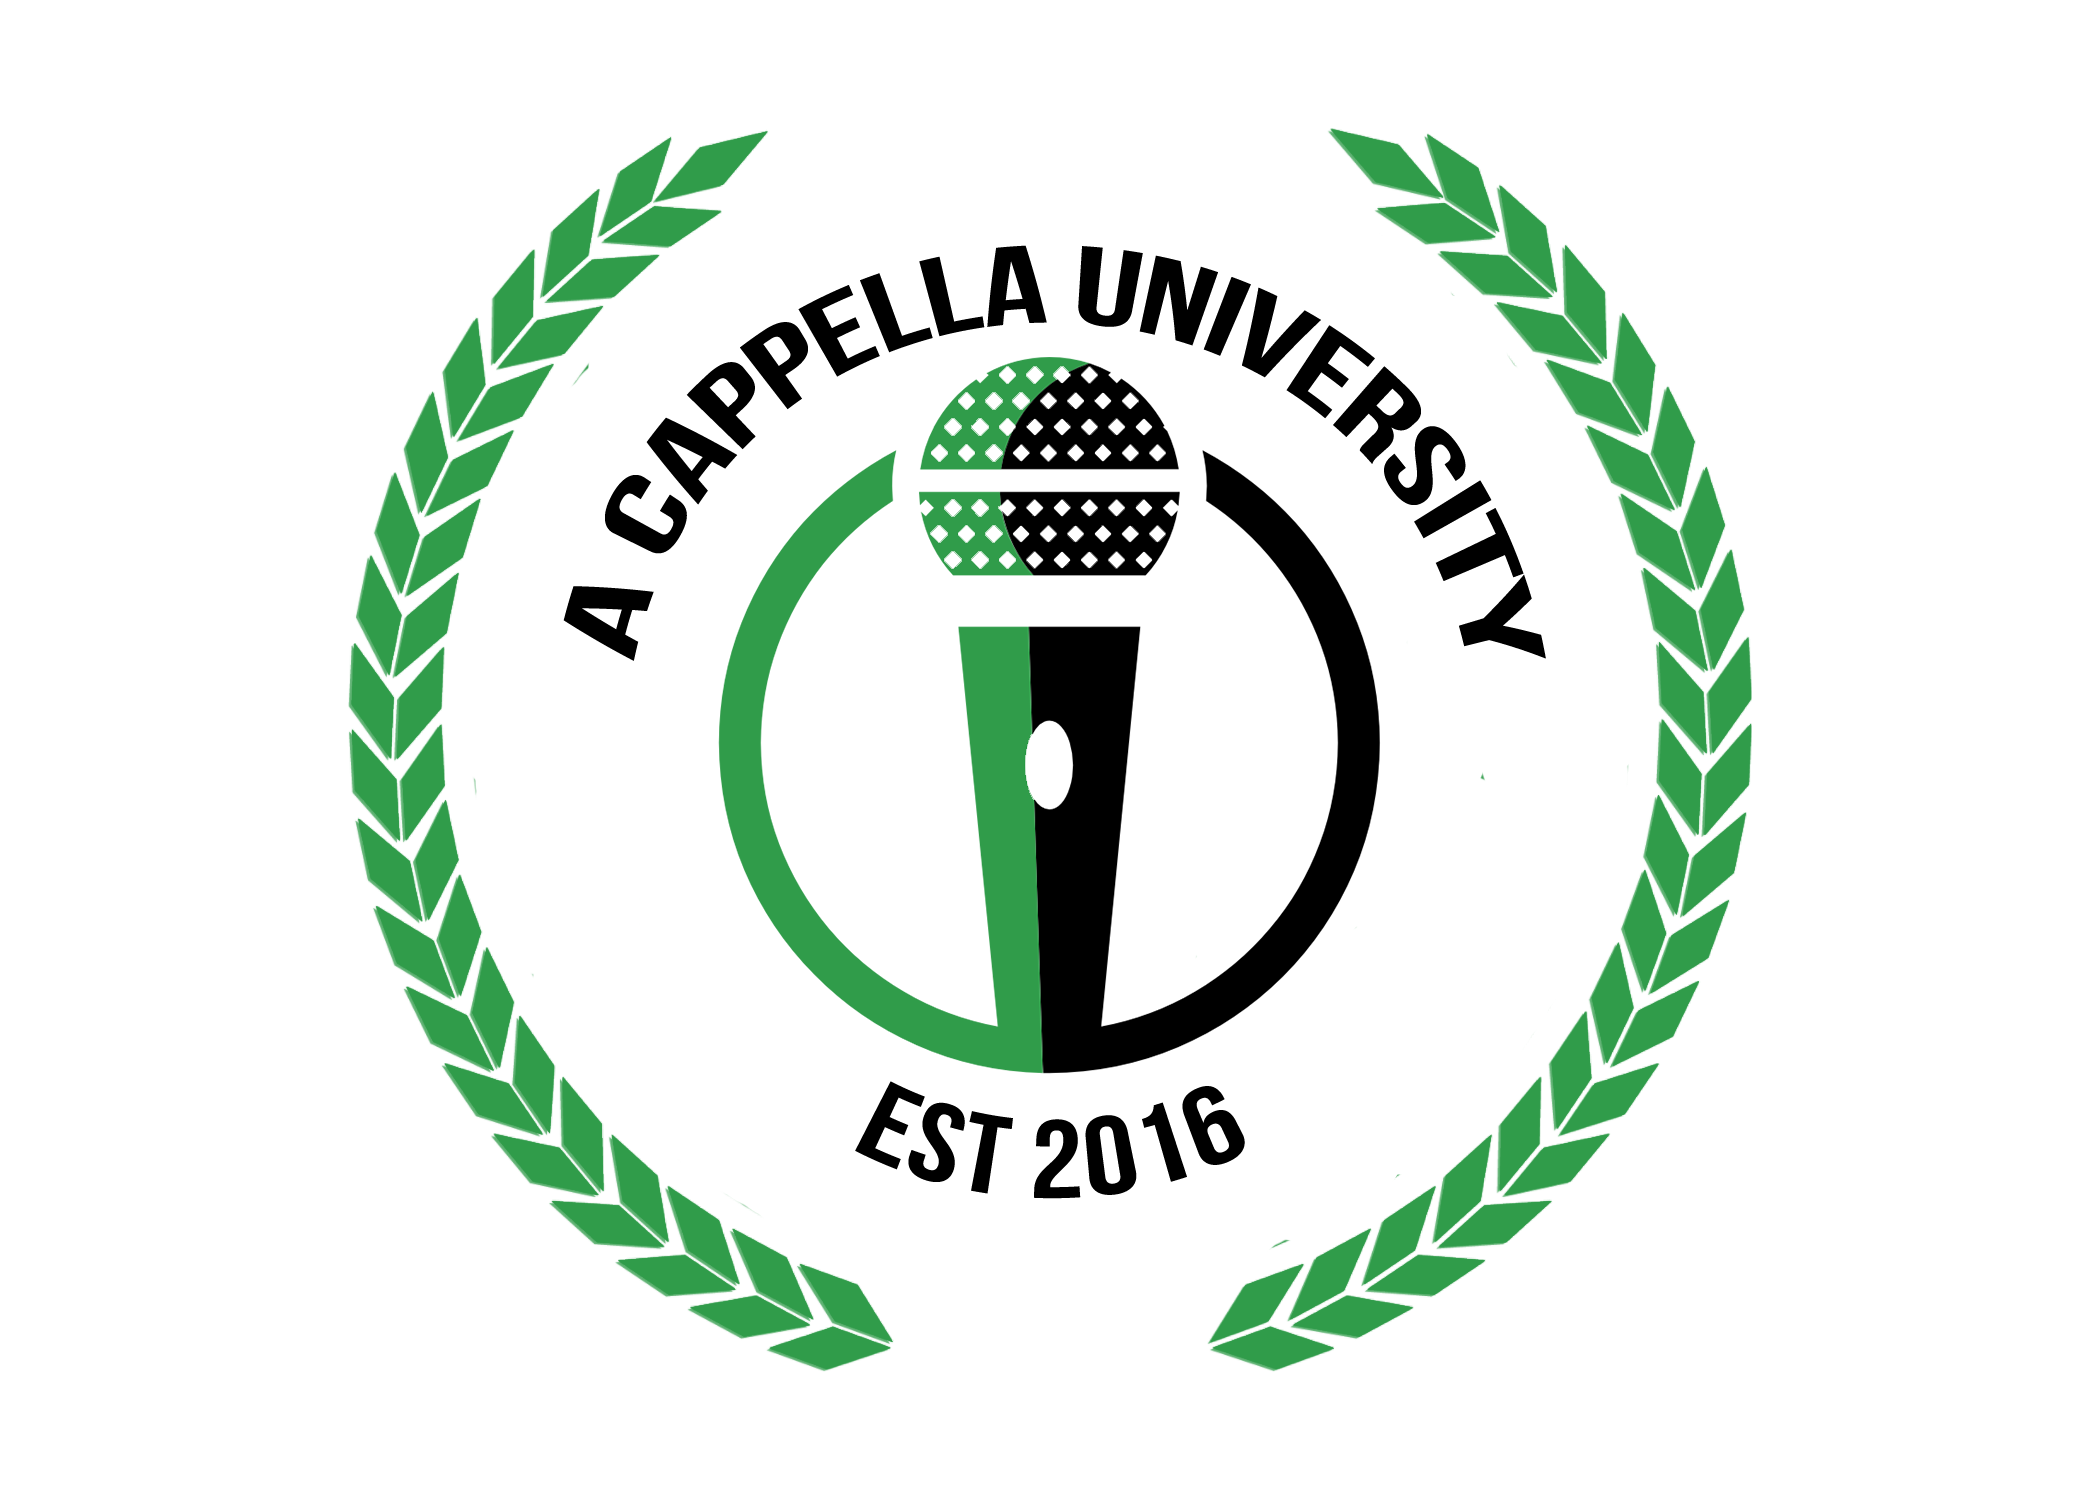 a cappella university